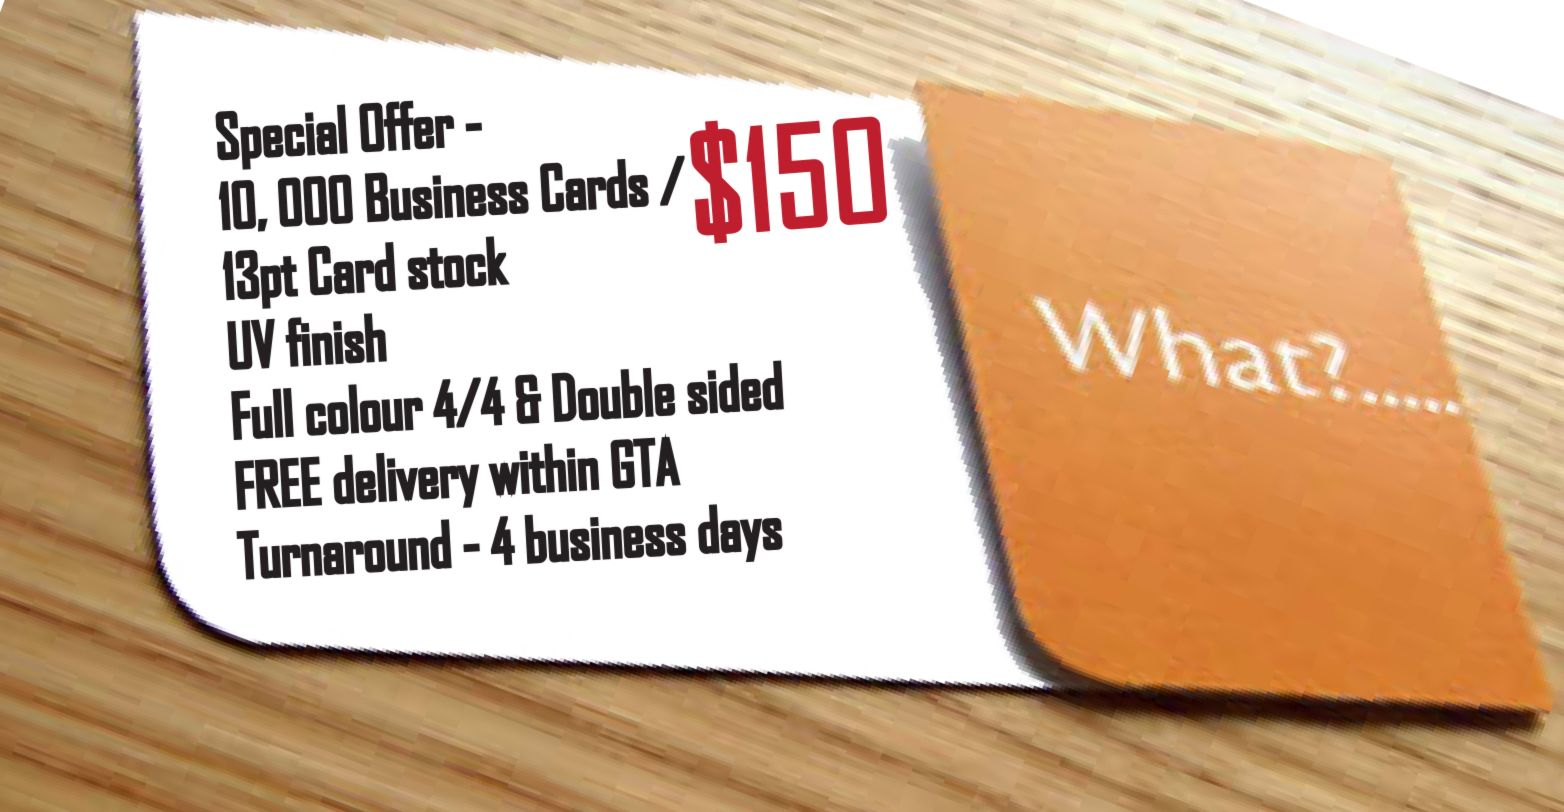 10,000 Business Cards for JUST $150 + FREE delivery within GTA ...